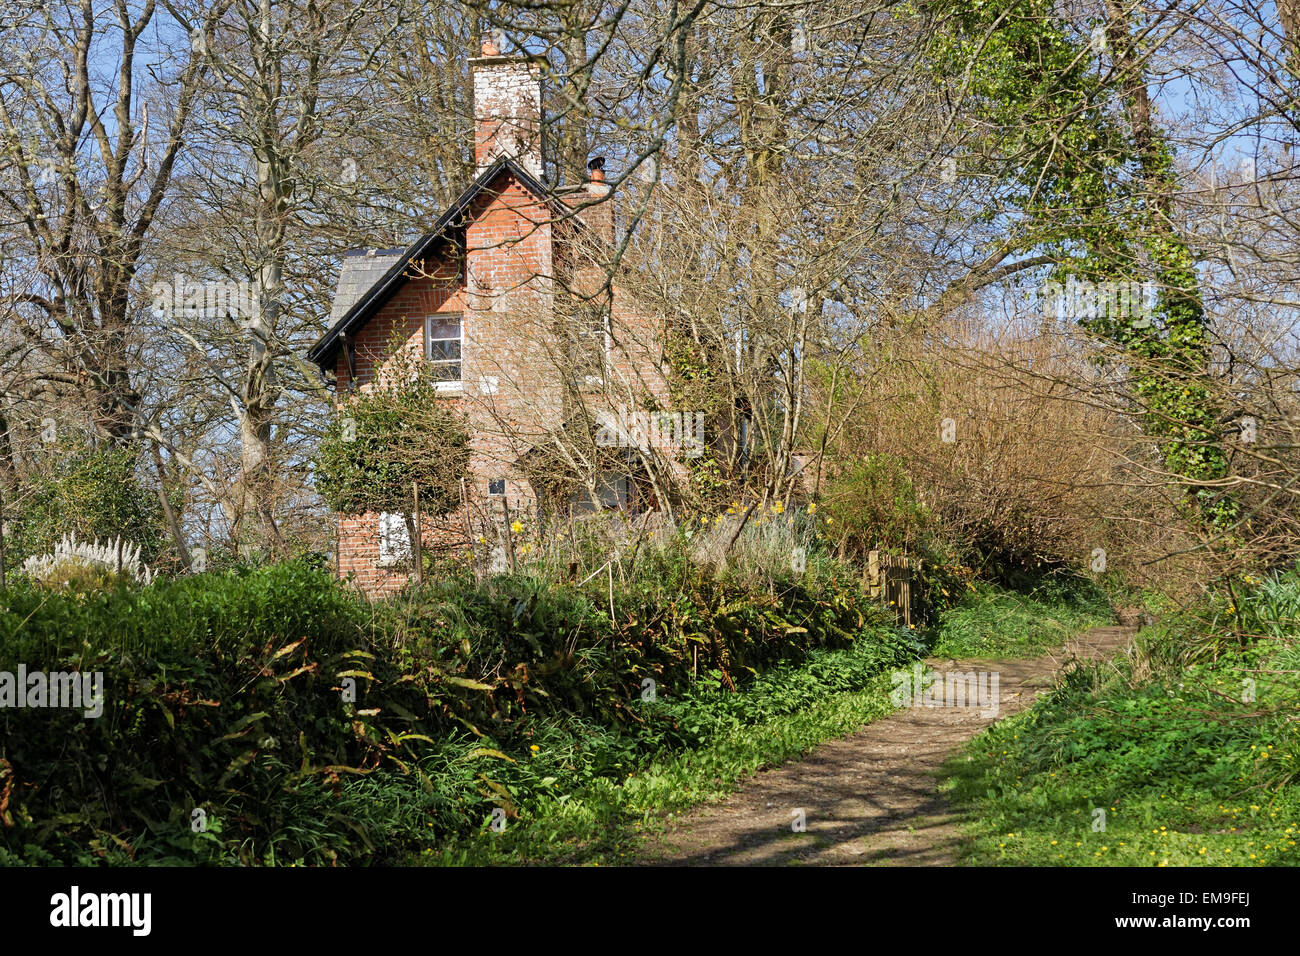 River Cottage Netherbury Dorset, once the home of Hugh Fearnley-Whittingstall. - Stock Image